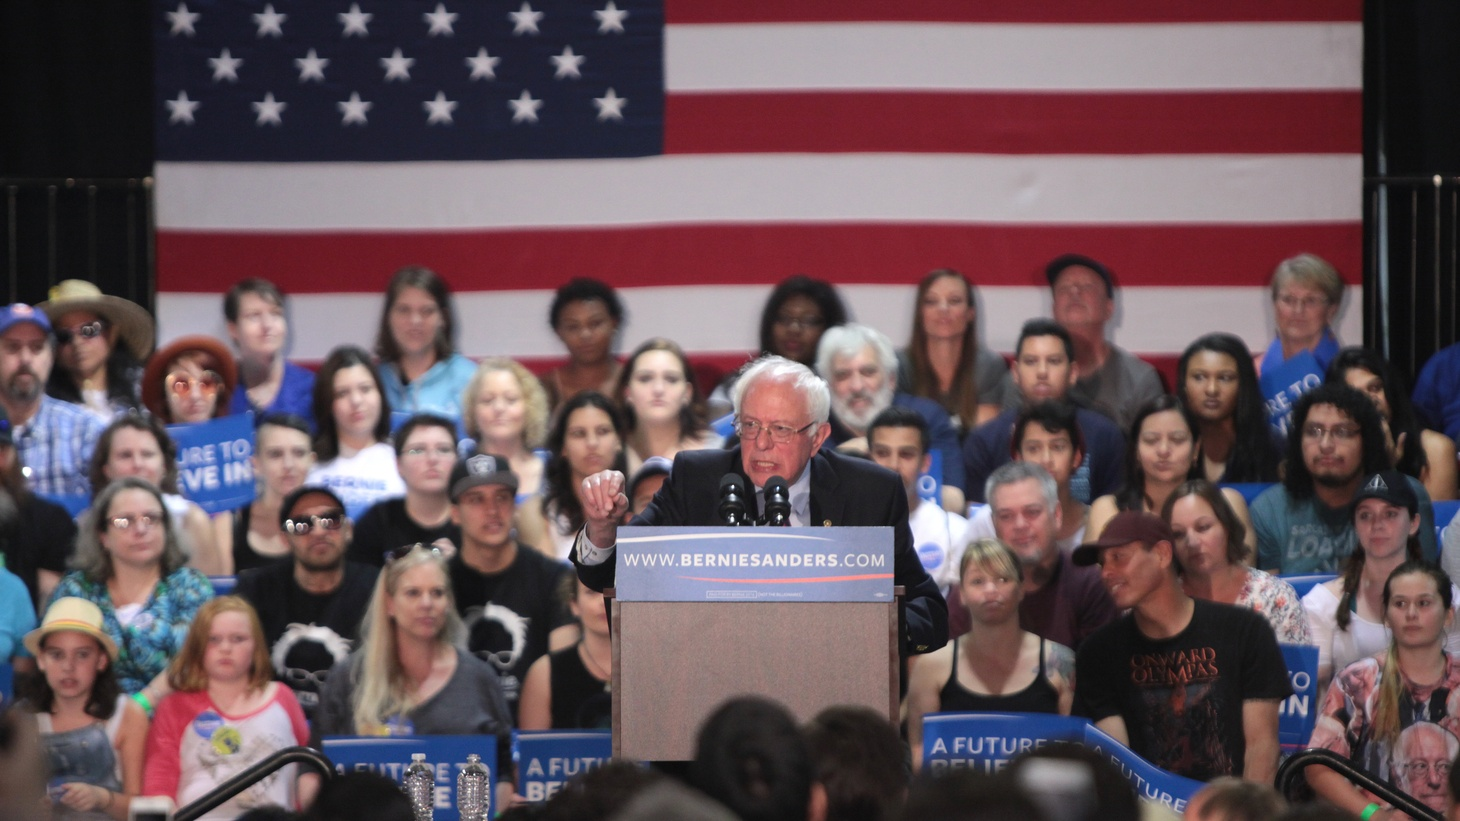 U.S. Senator Bernie Sanders speaking with supporters at the Agriculture Center at the Arizona State Fairgrounds in Phoenix, Arizona.